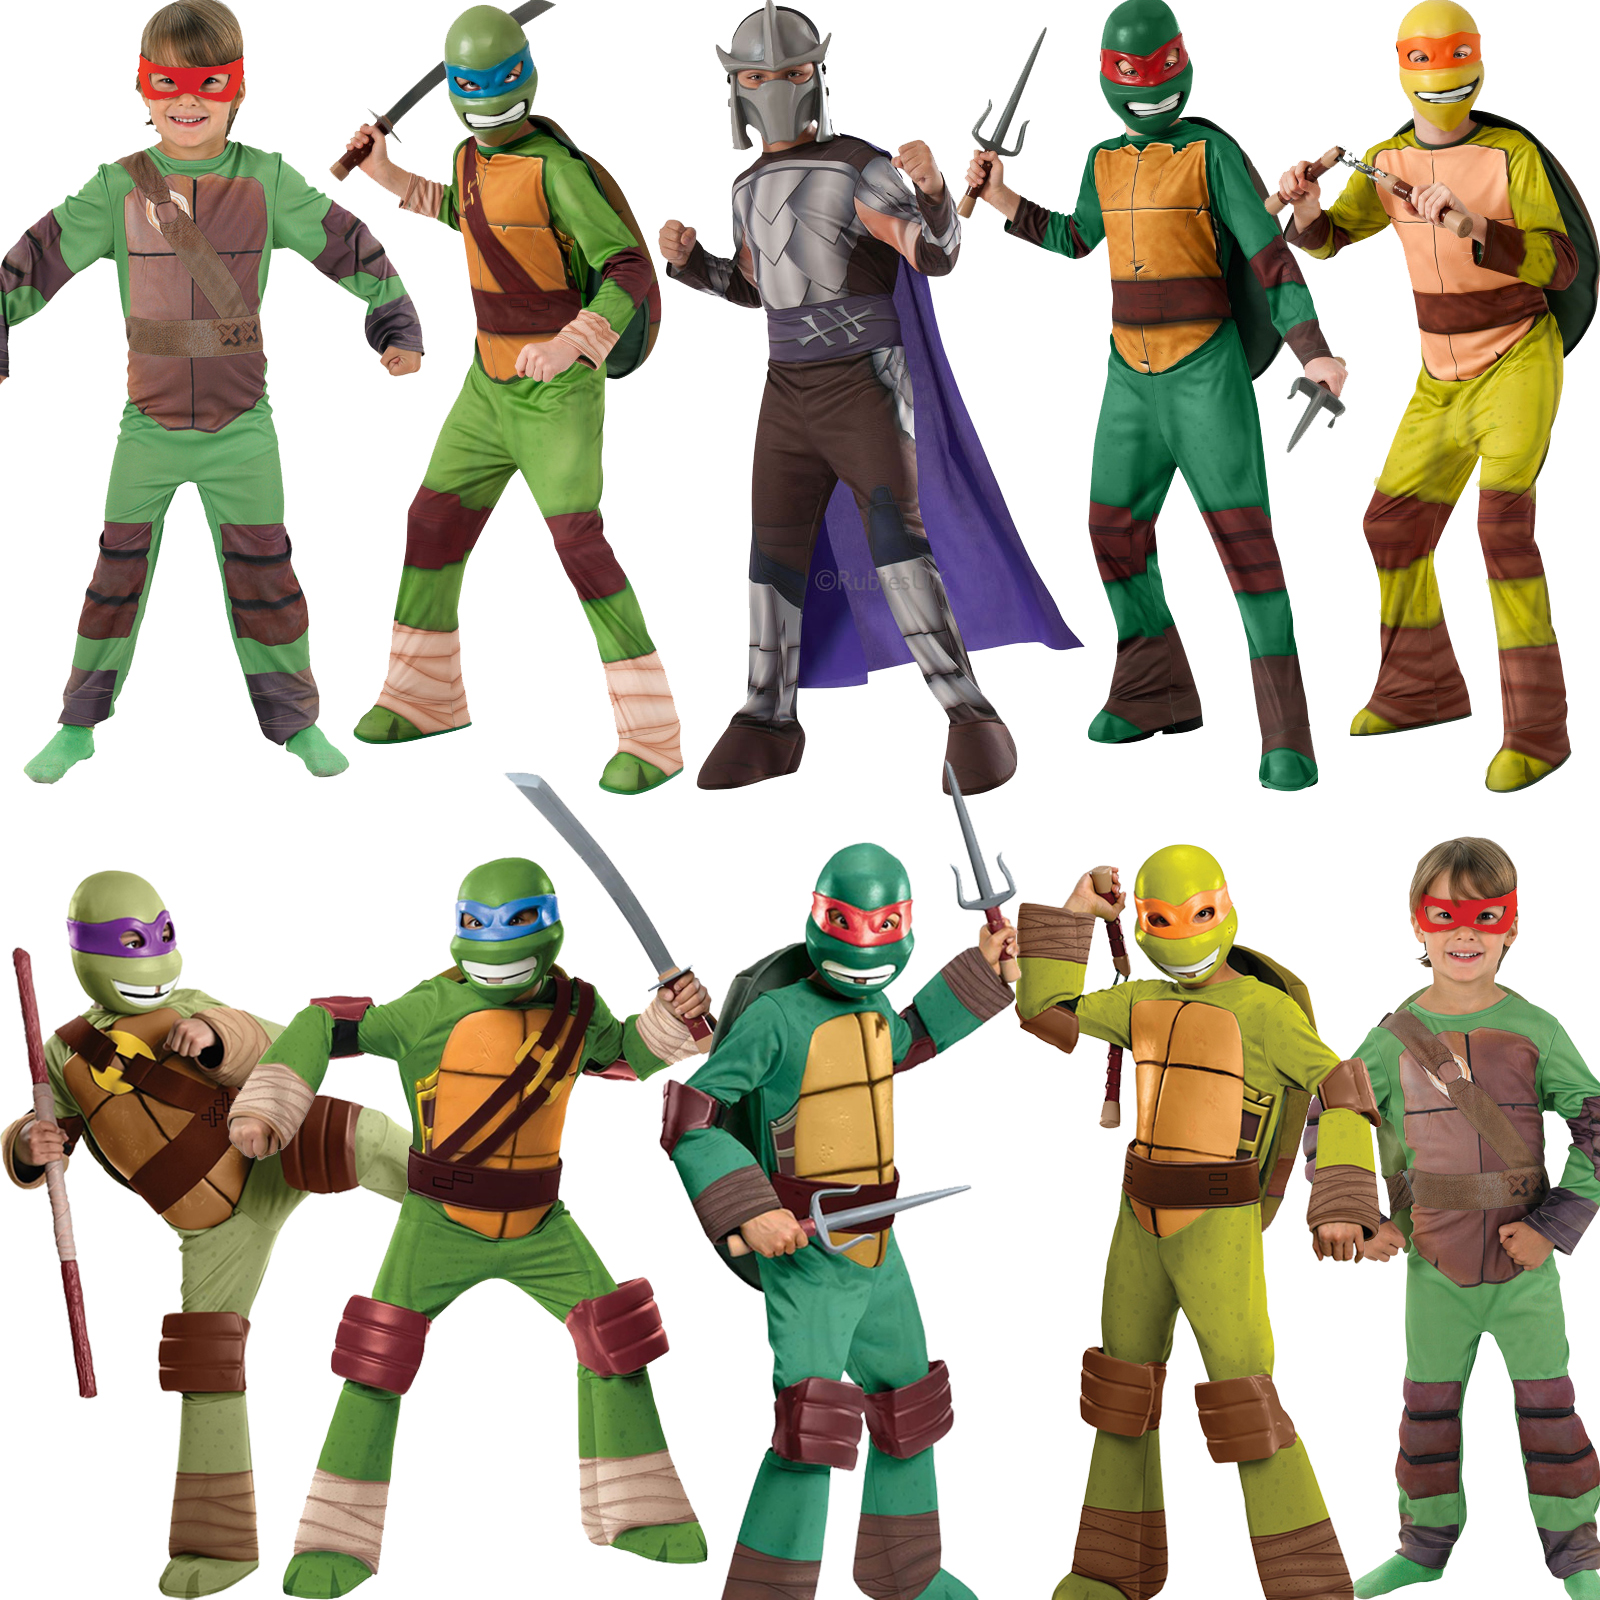 Teenage mutant ninja turtles costume for kids - photo#15